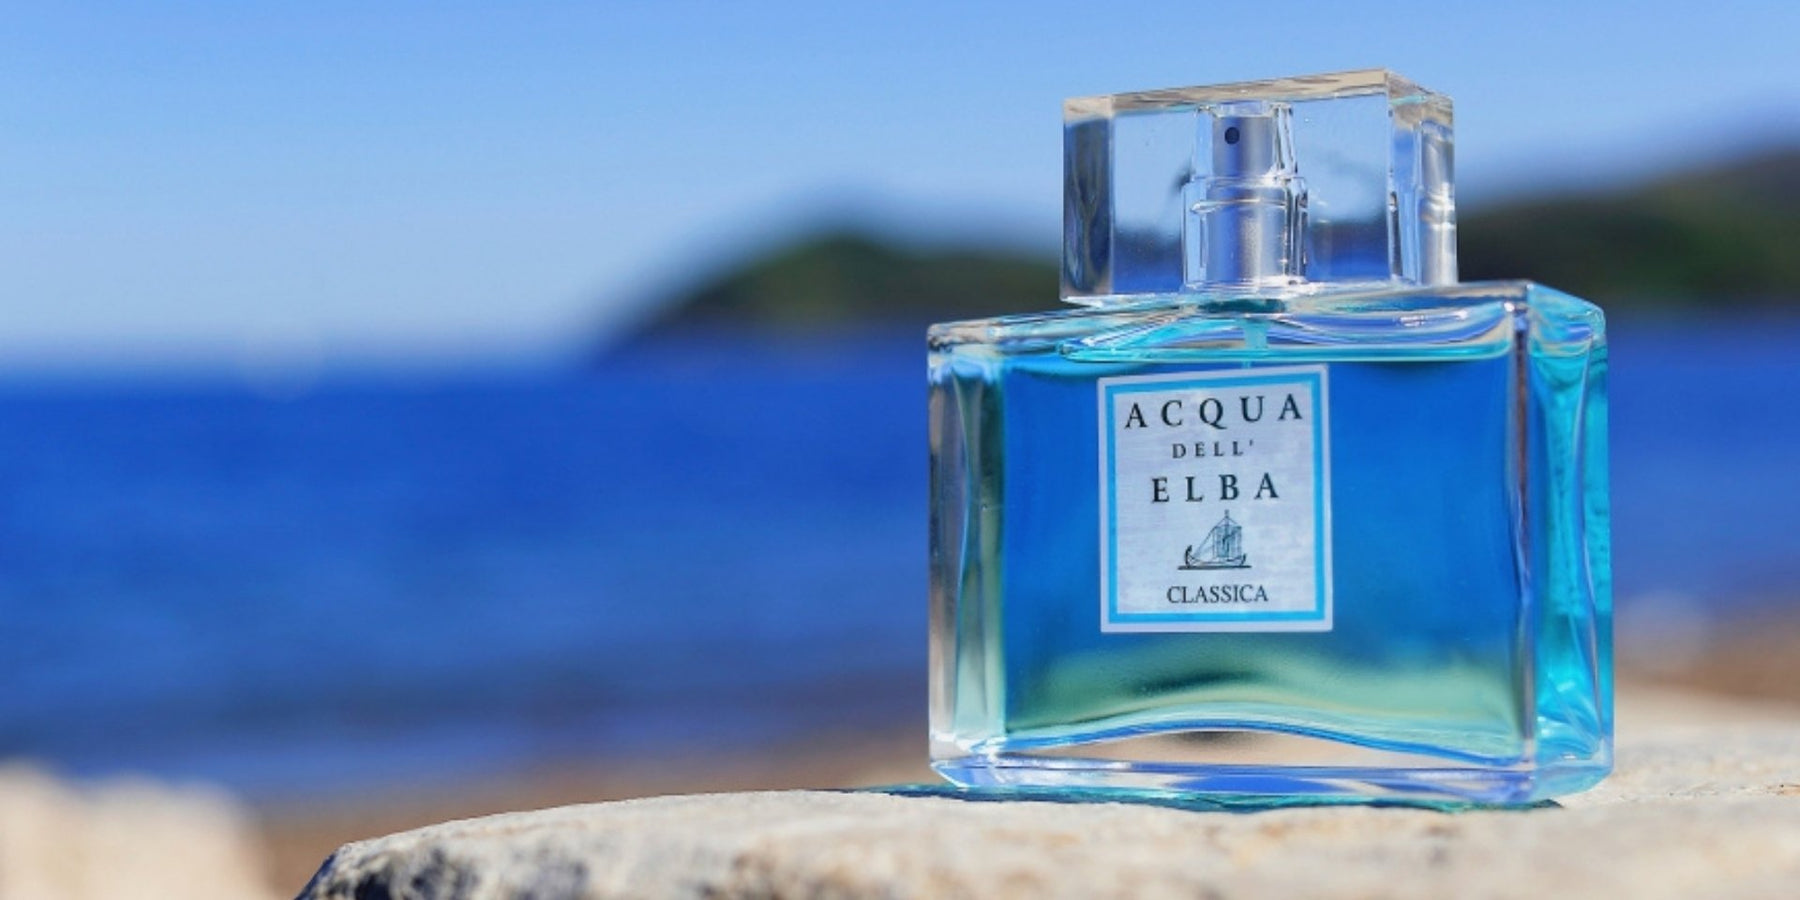 Classica. The original fragrance collection from Acqua dell'Elba